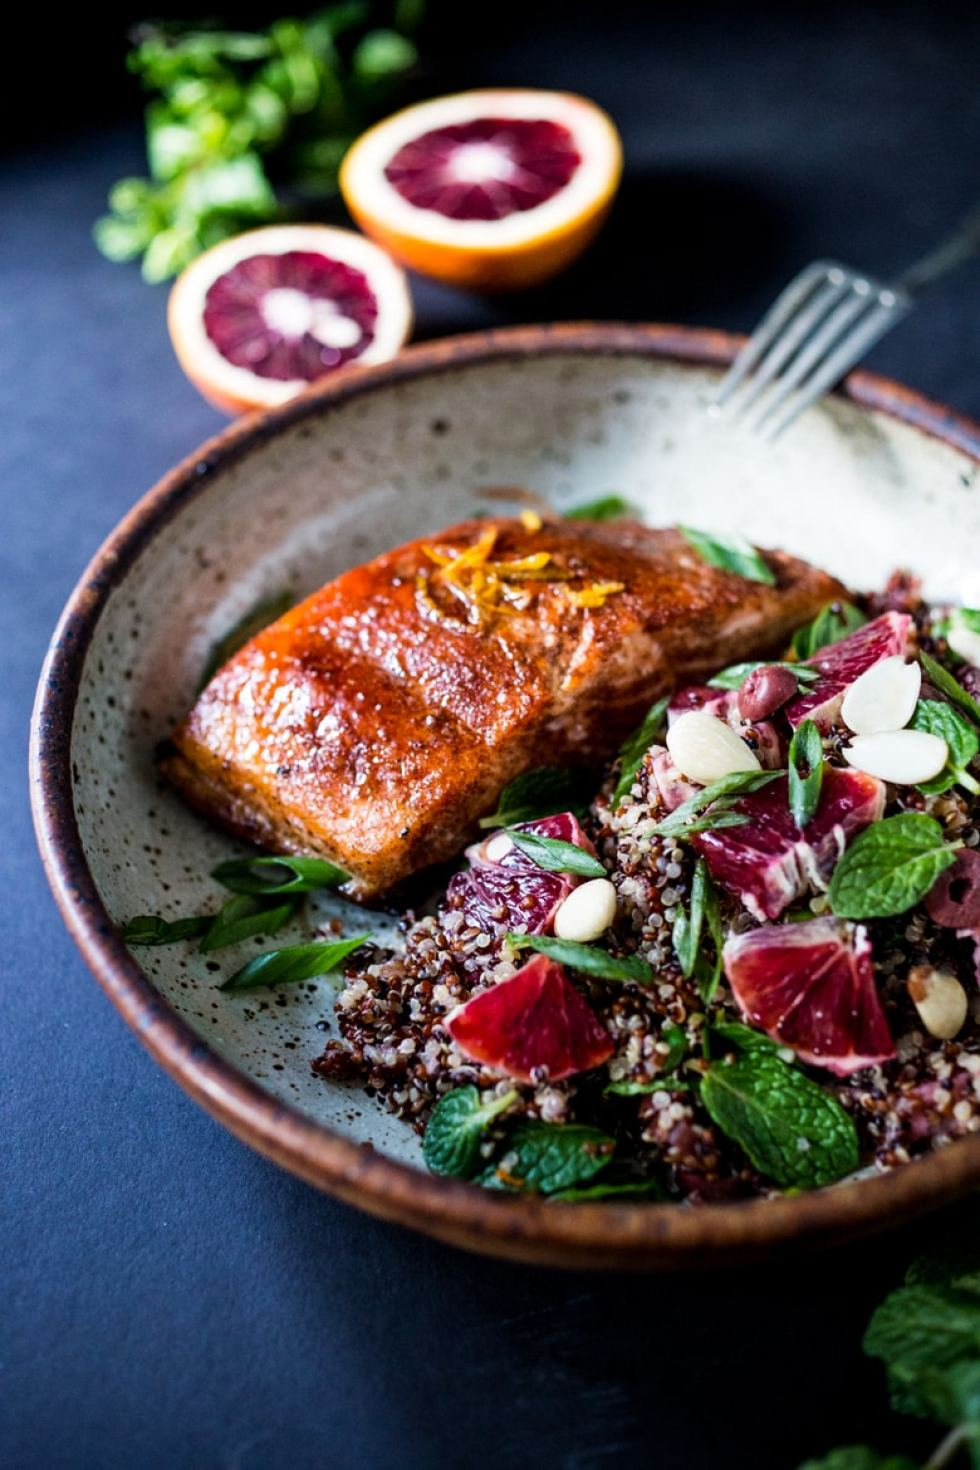 A simple Moroccan Quinoa Salad with blood oranges, almonds, olives, mint and a blood orange dressing. Pair this with Moroccan Salmon for a quick healthy meal.   www.feastingathome.com